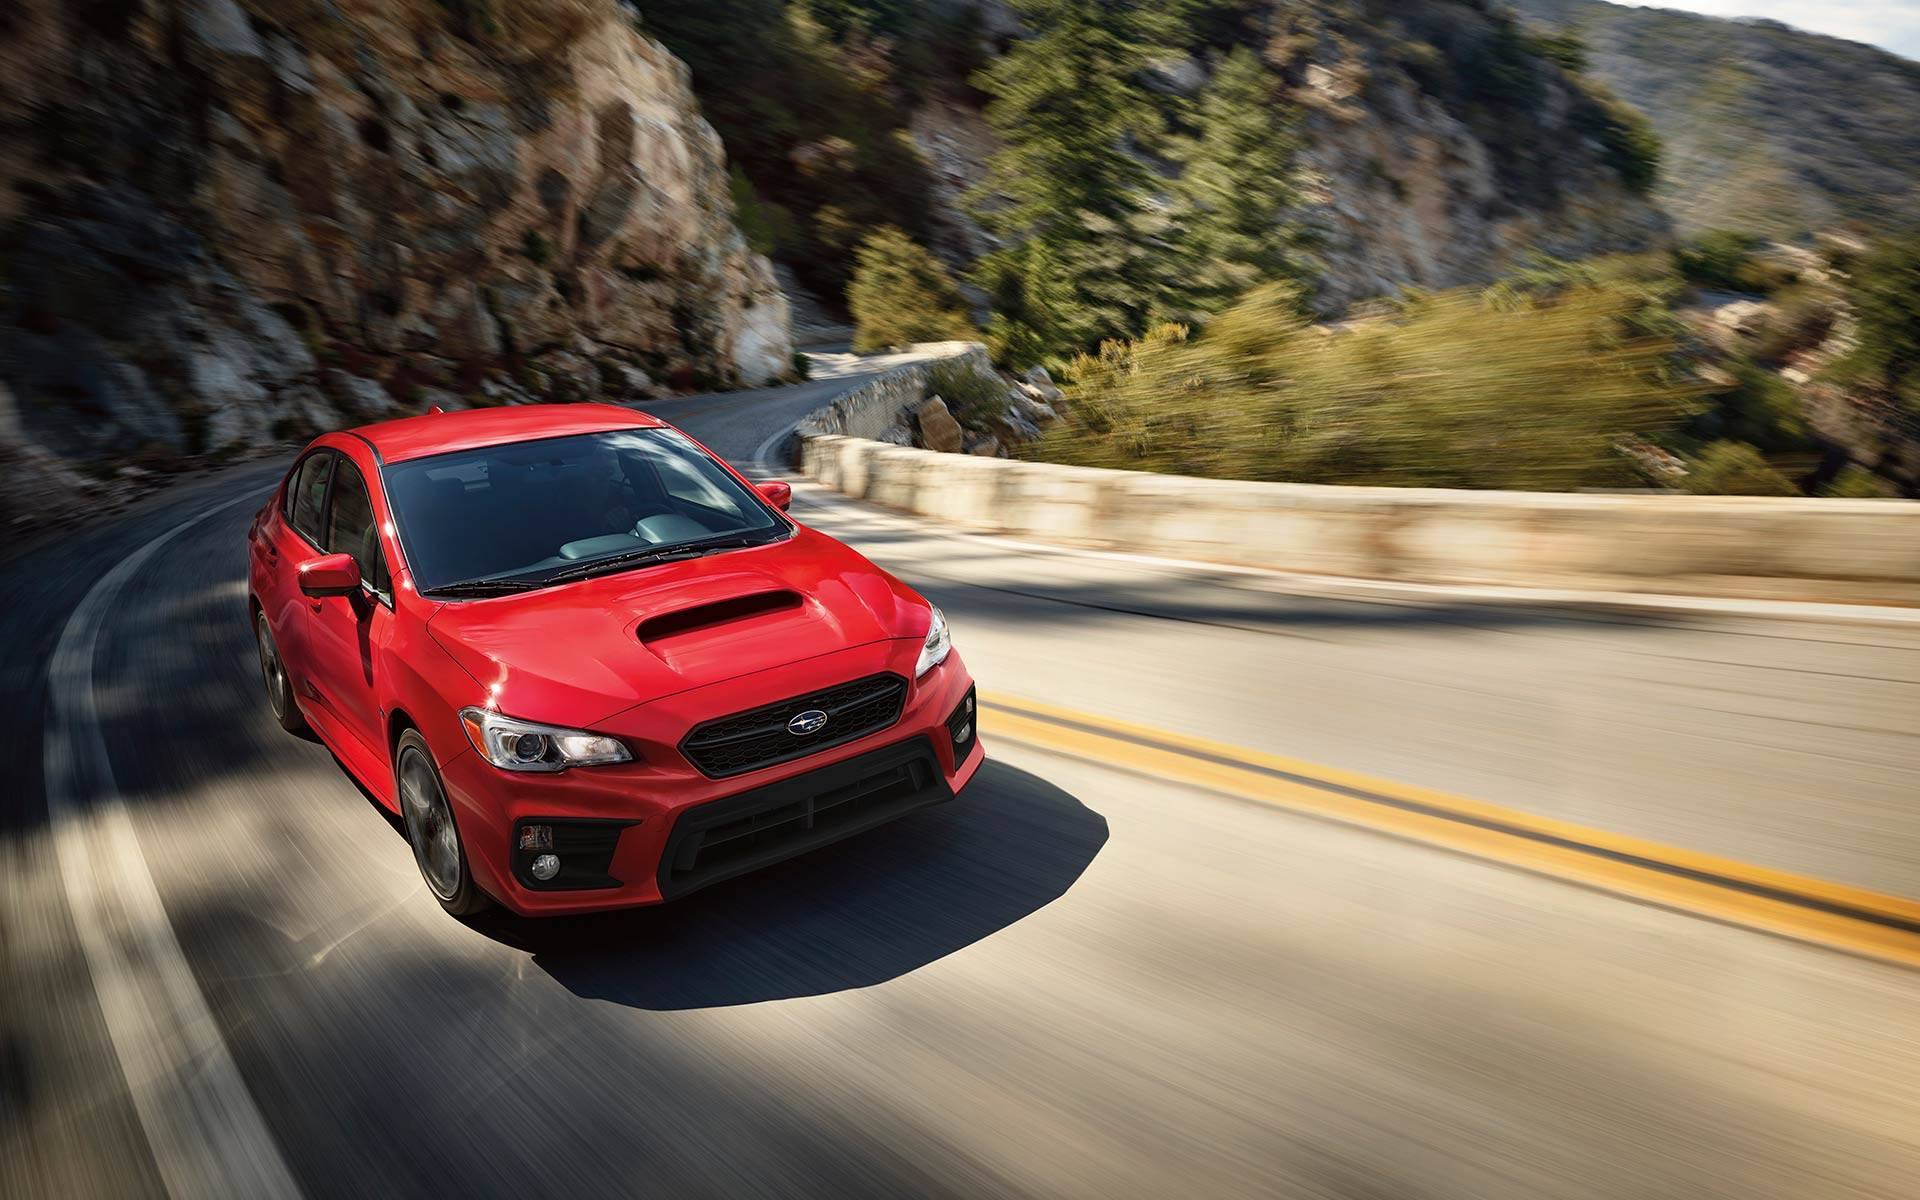 2018 Subaru WRX Red Front Driving Exterior